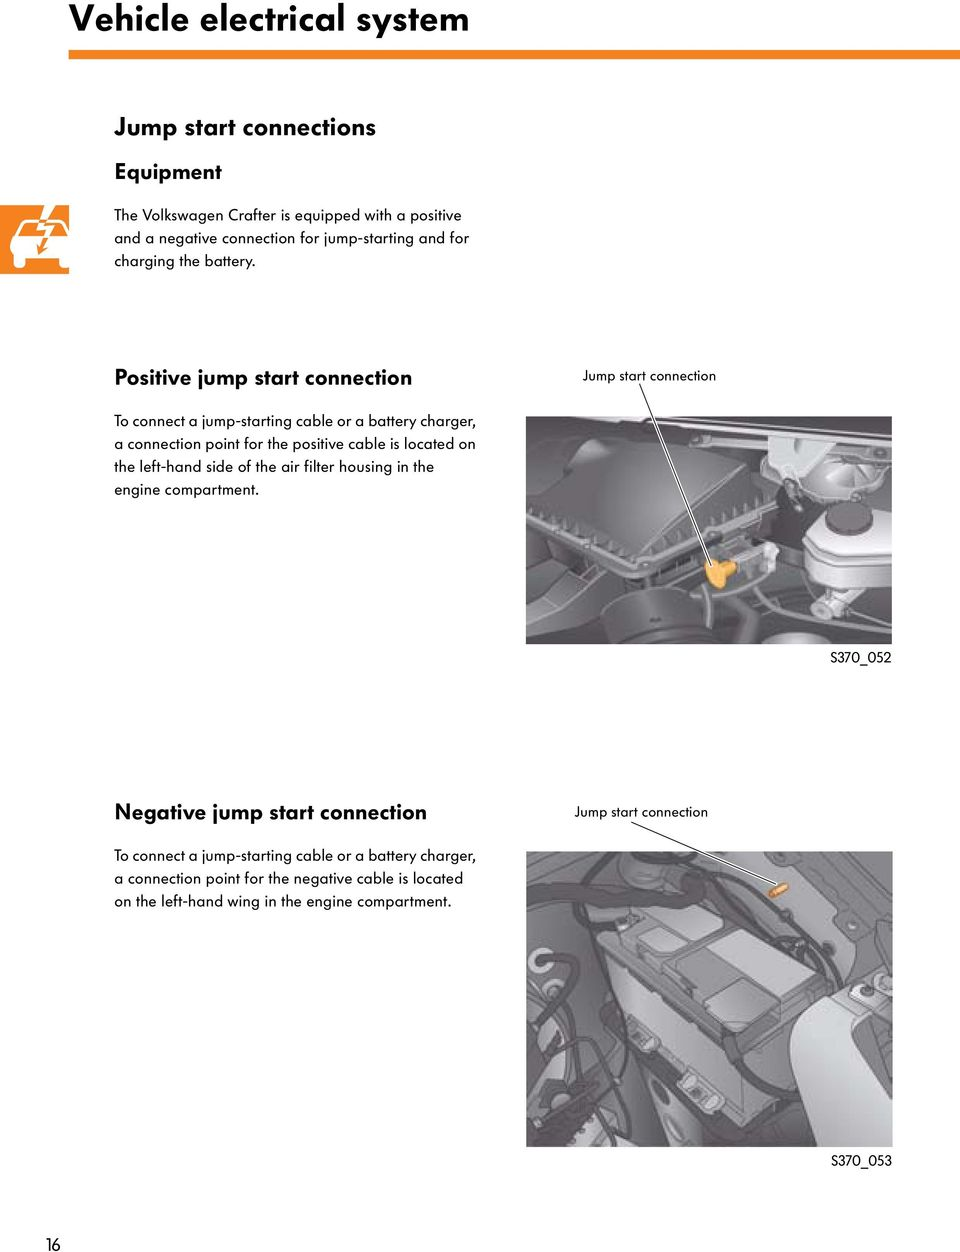 The Crafter Electrical System Pdf Rover T16 Wiring Diagram Positive Jump Start Connection To Connect A Starting Cable Or